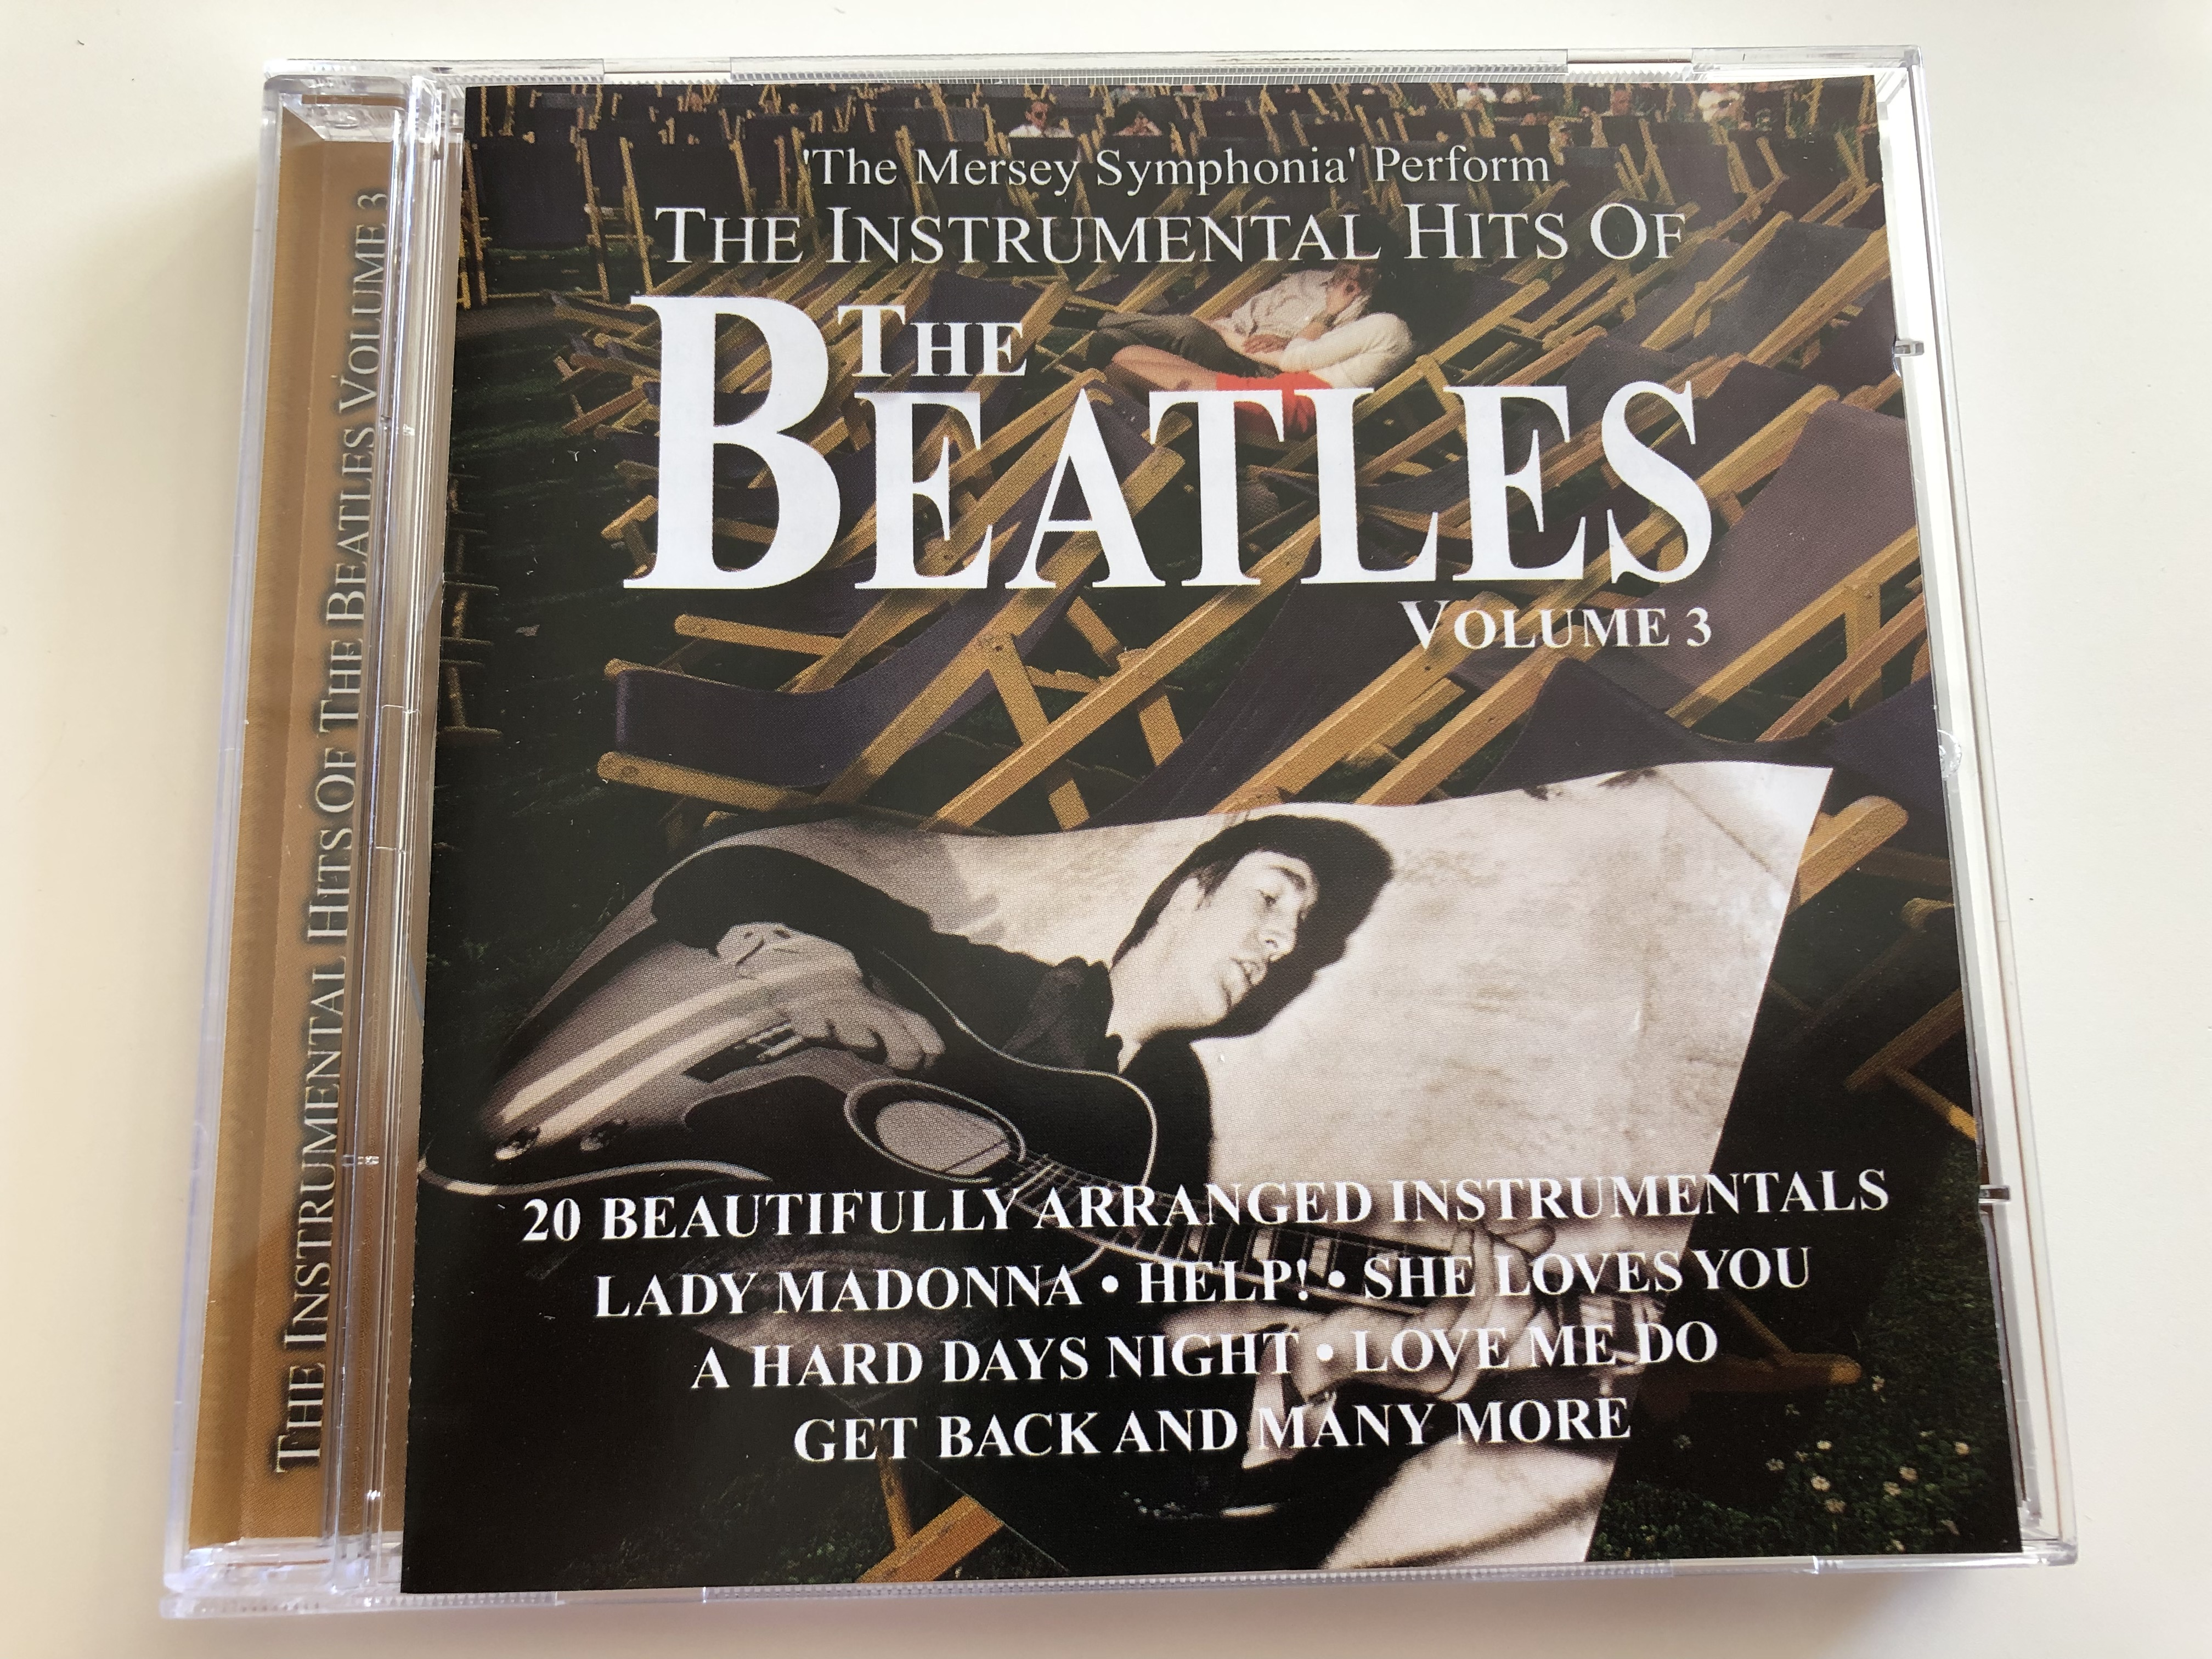 the-instrumental-hits-of-the-beatles-vol.-3-mersey-symphonia-20-beautifully-arranged-instrumentals-lady-madonna-help-she-loves-you-audio-cd-2000-apwcd1044-musicbank-1-.jpg